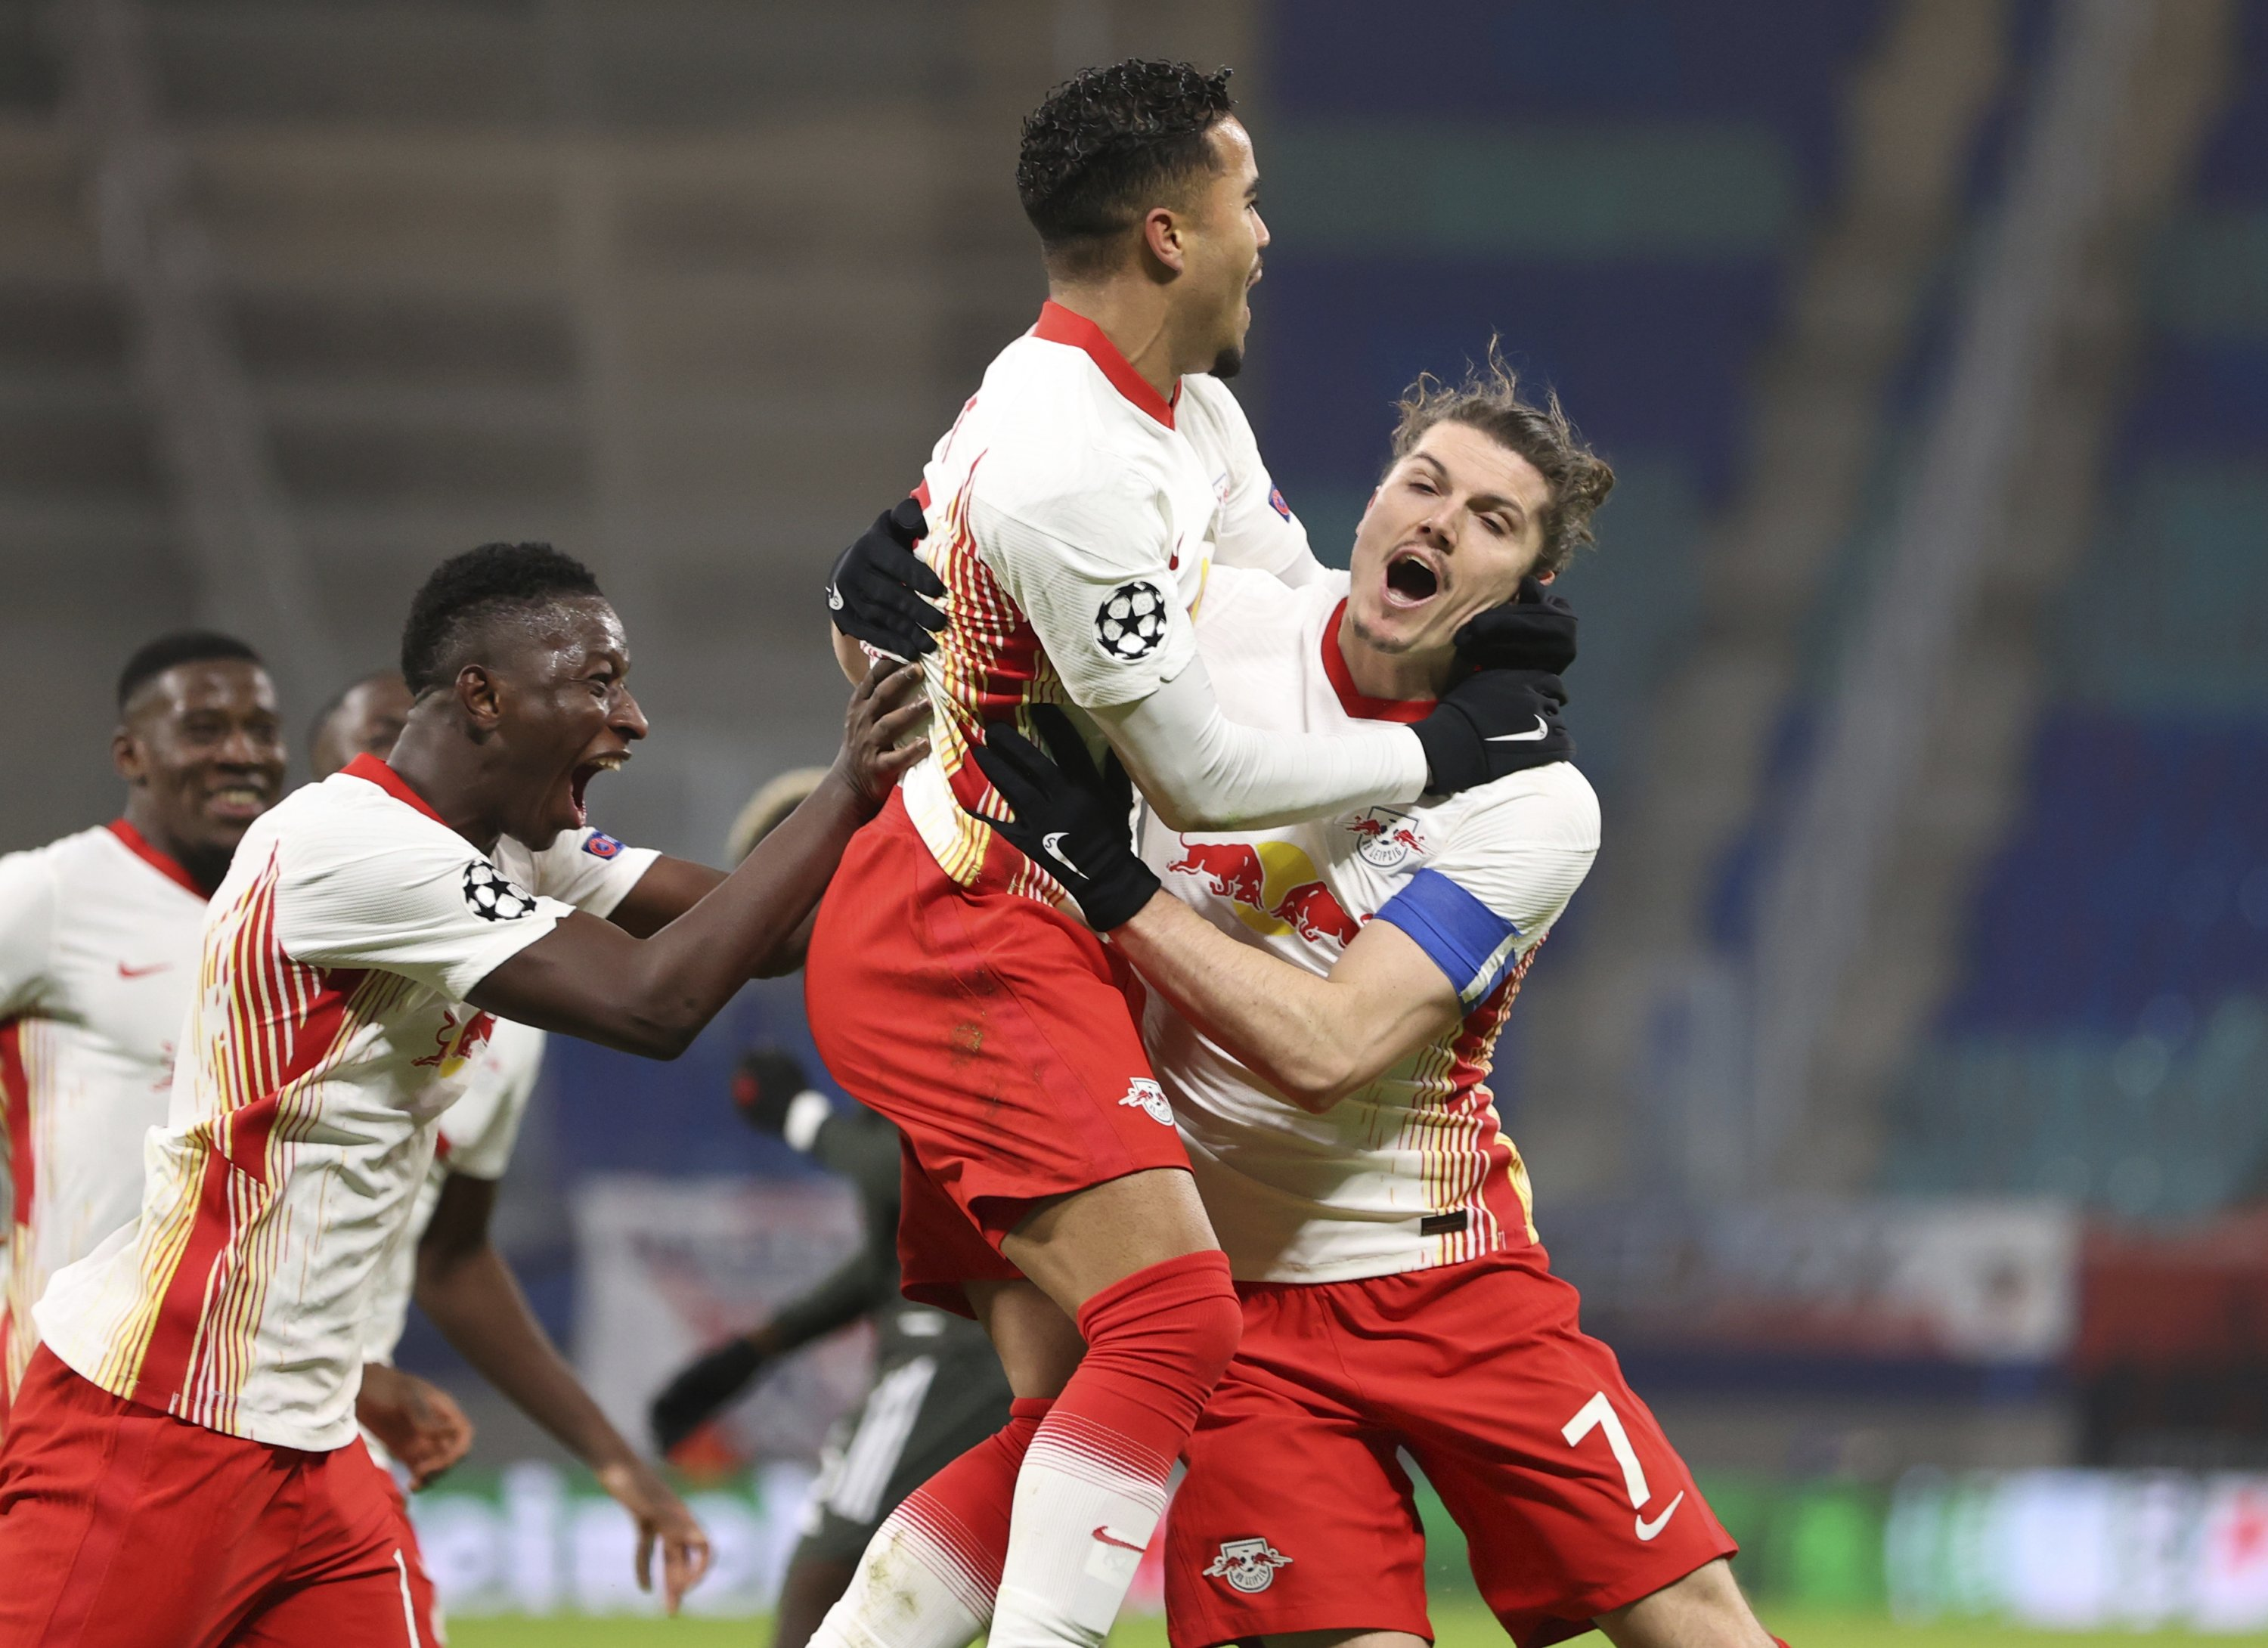 Leipzig knocks Manchester United out of Champions League with 3-2 win |  Daily Sabah